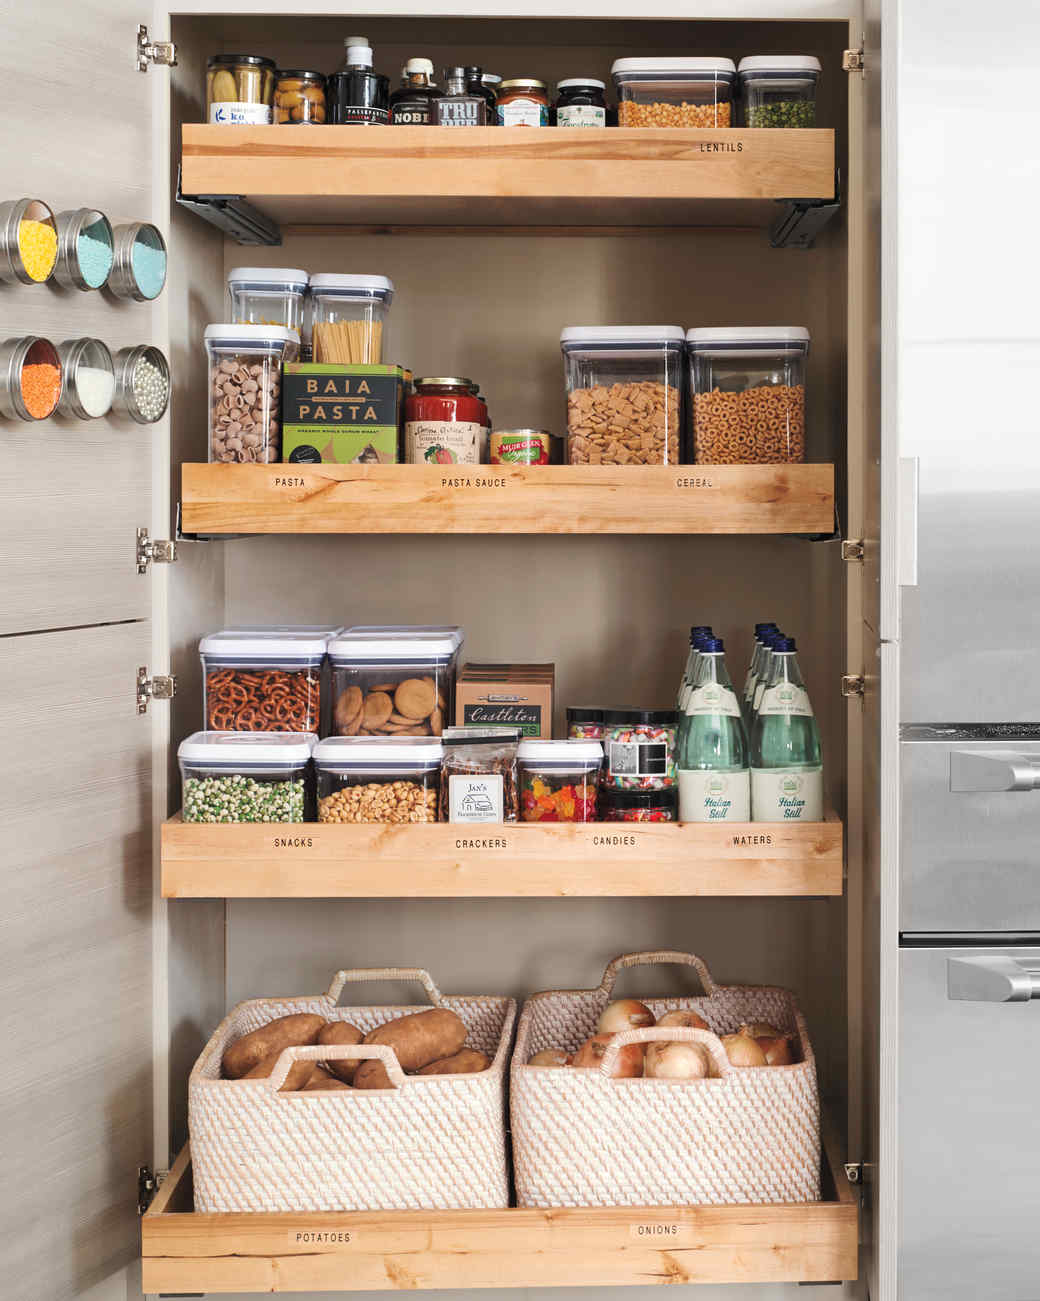 Organizing Your Kitchen Organize your kitchen cabinets in 11 easy steps martha stewart baskets and bins workwithnaturefo